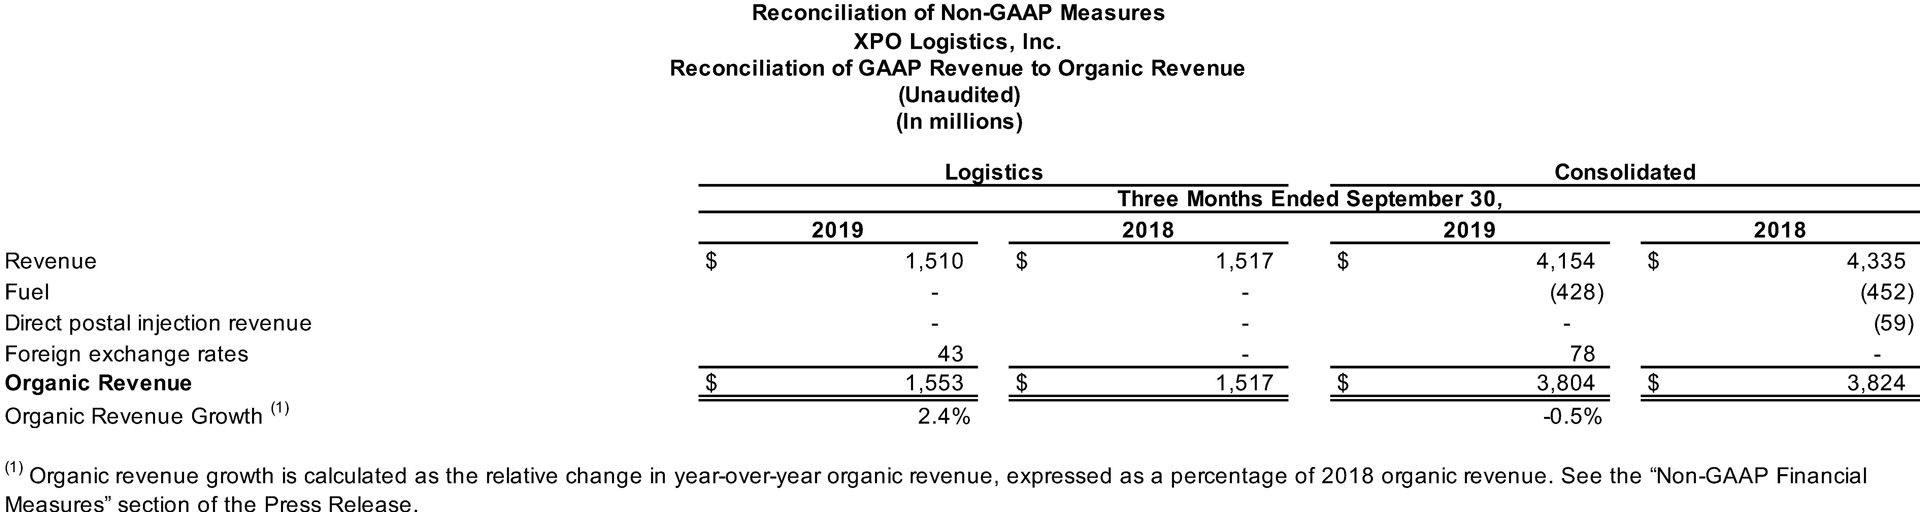 Reconciliation of GAAP Revenue to Organic Revenue